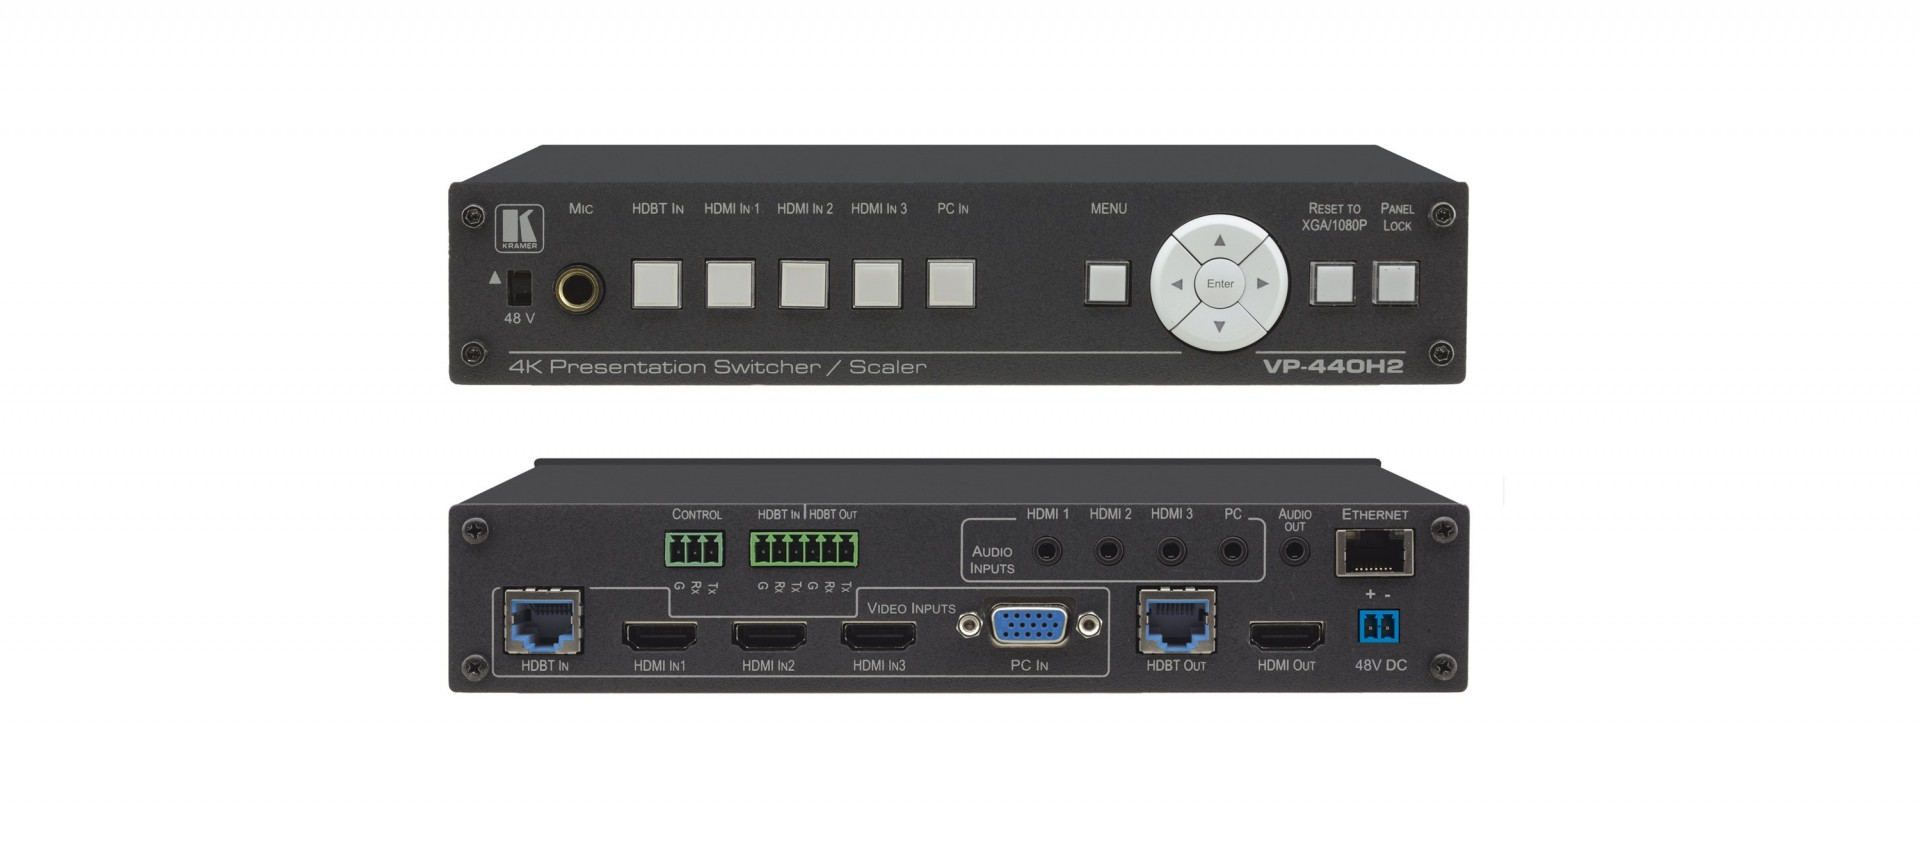 Kramer VP-440H2 Compact 5–Input 4K60 4:4:4 Presentation Switcher/Scaler with HDBaseT & HDMI Simultaneous Outputs